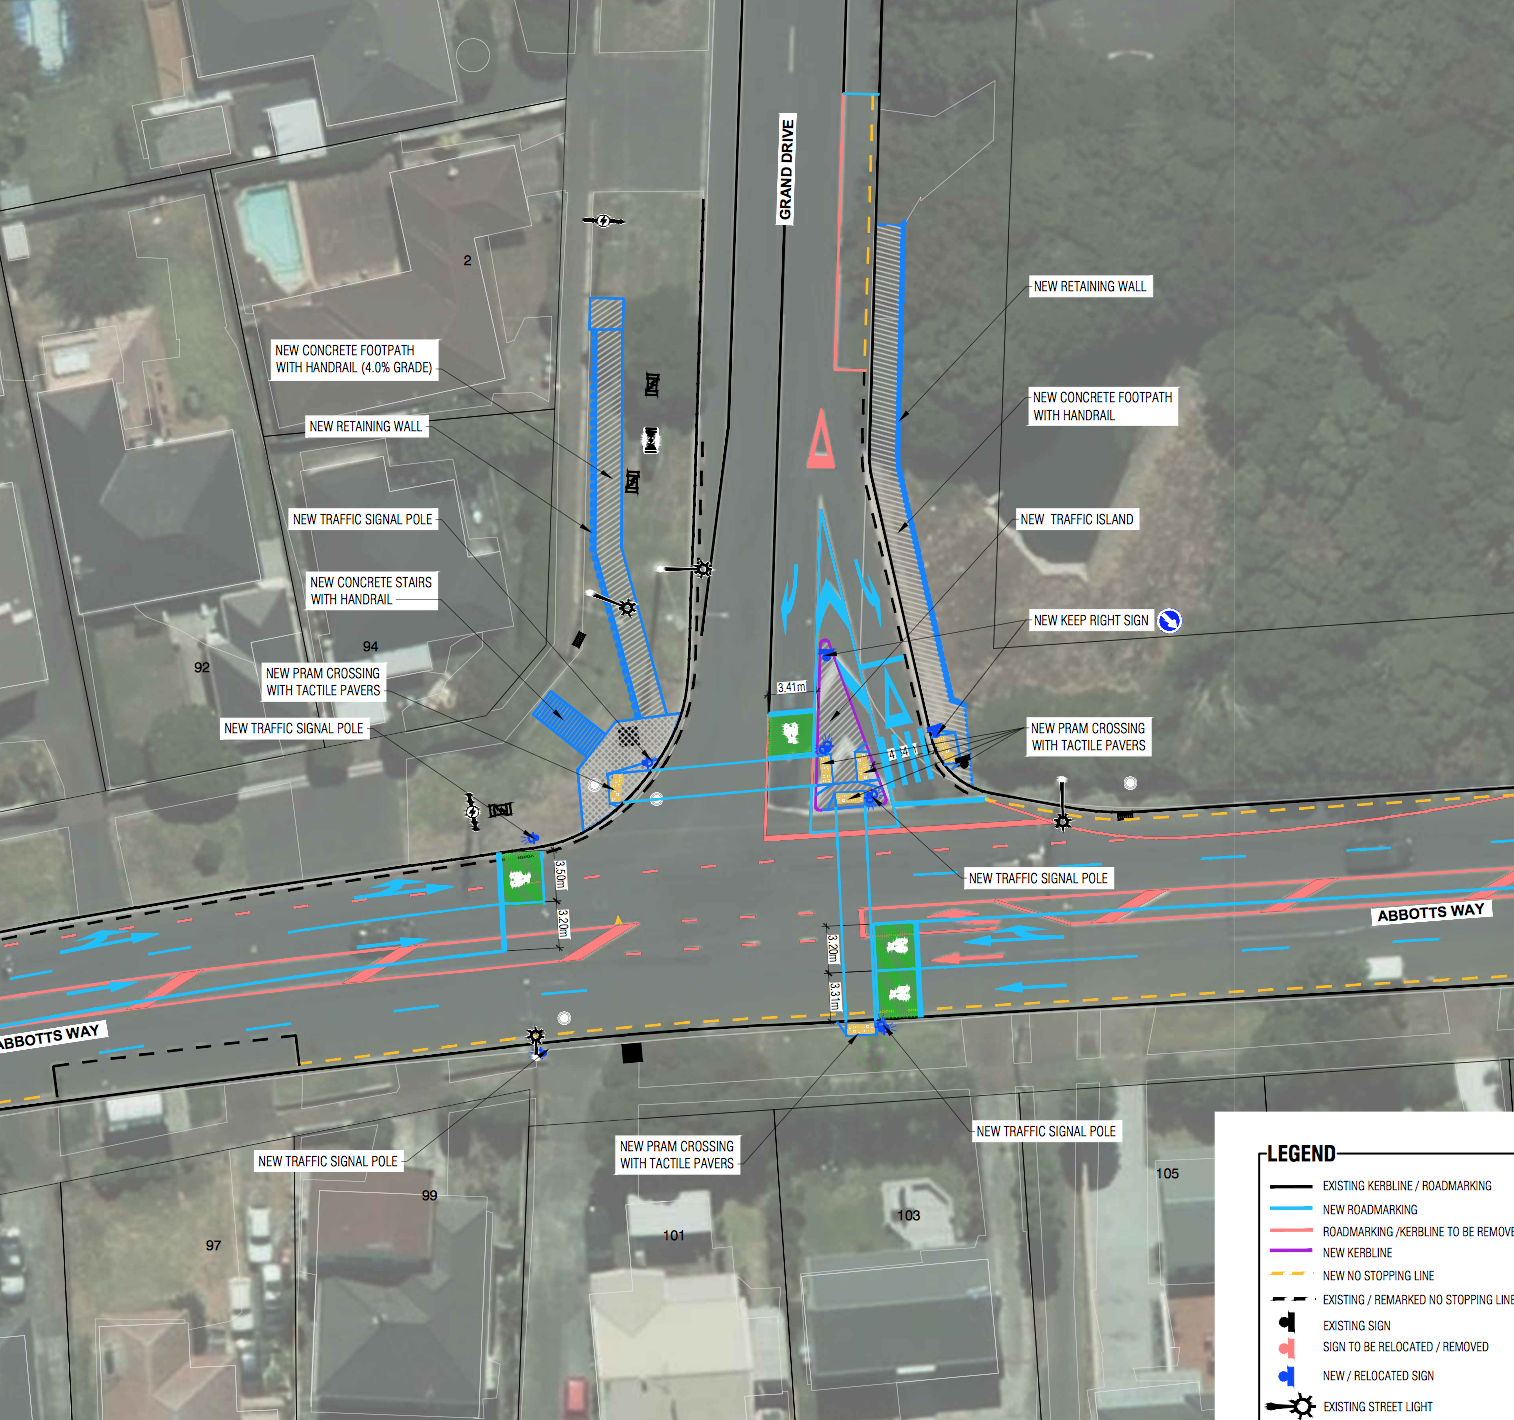 Abbotts Way Grand Drive intersection lights proposed